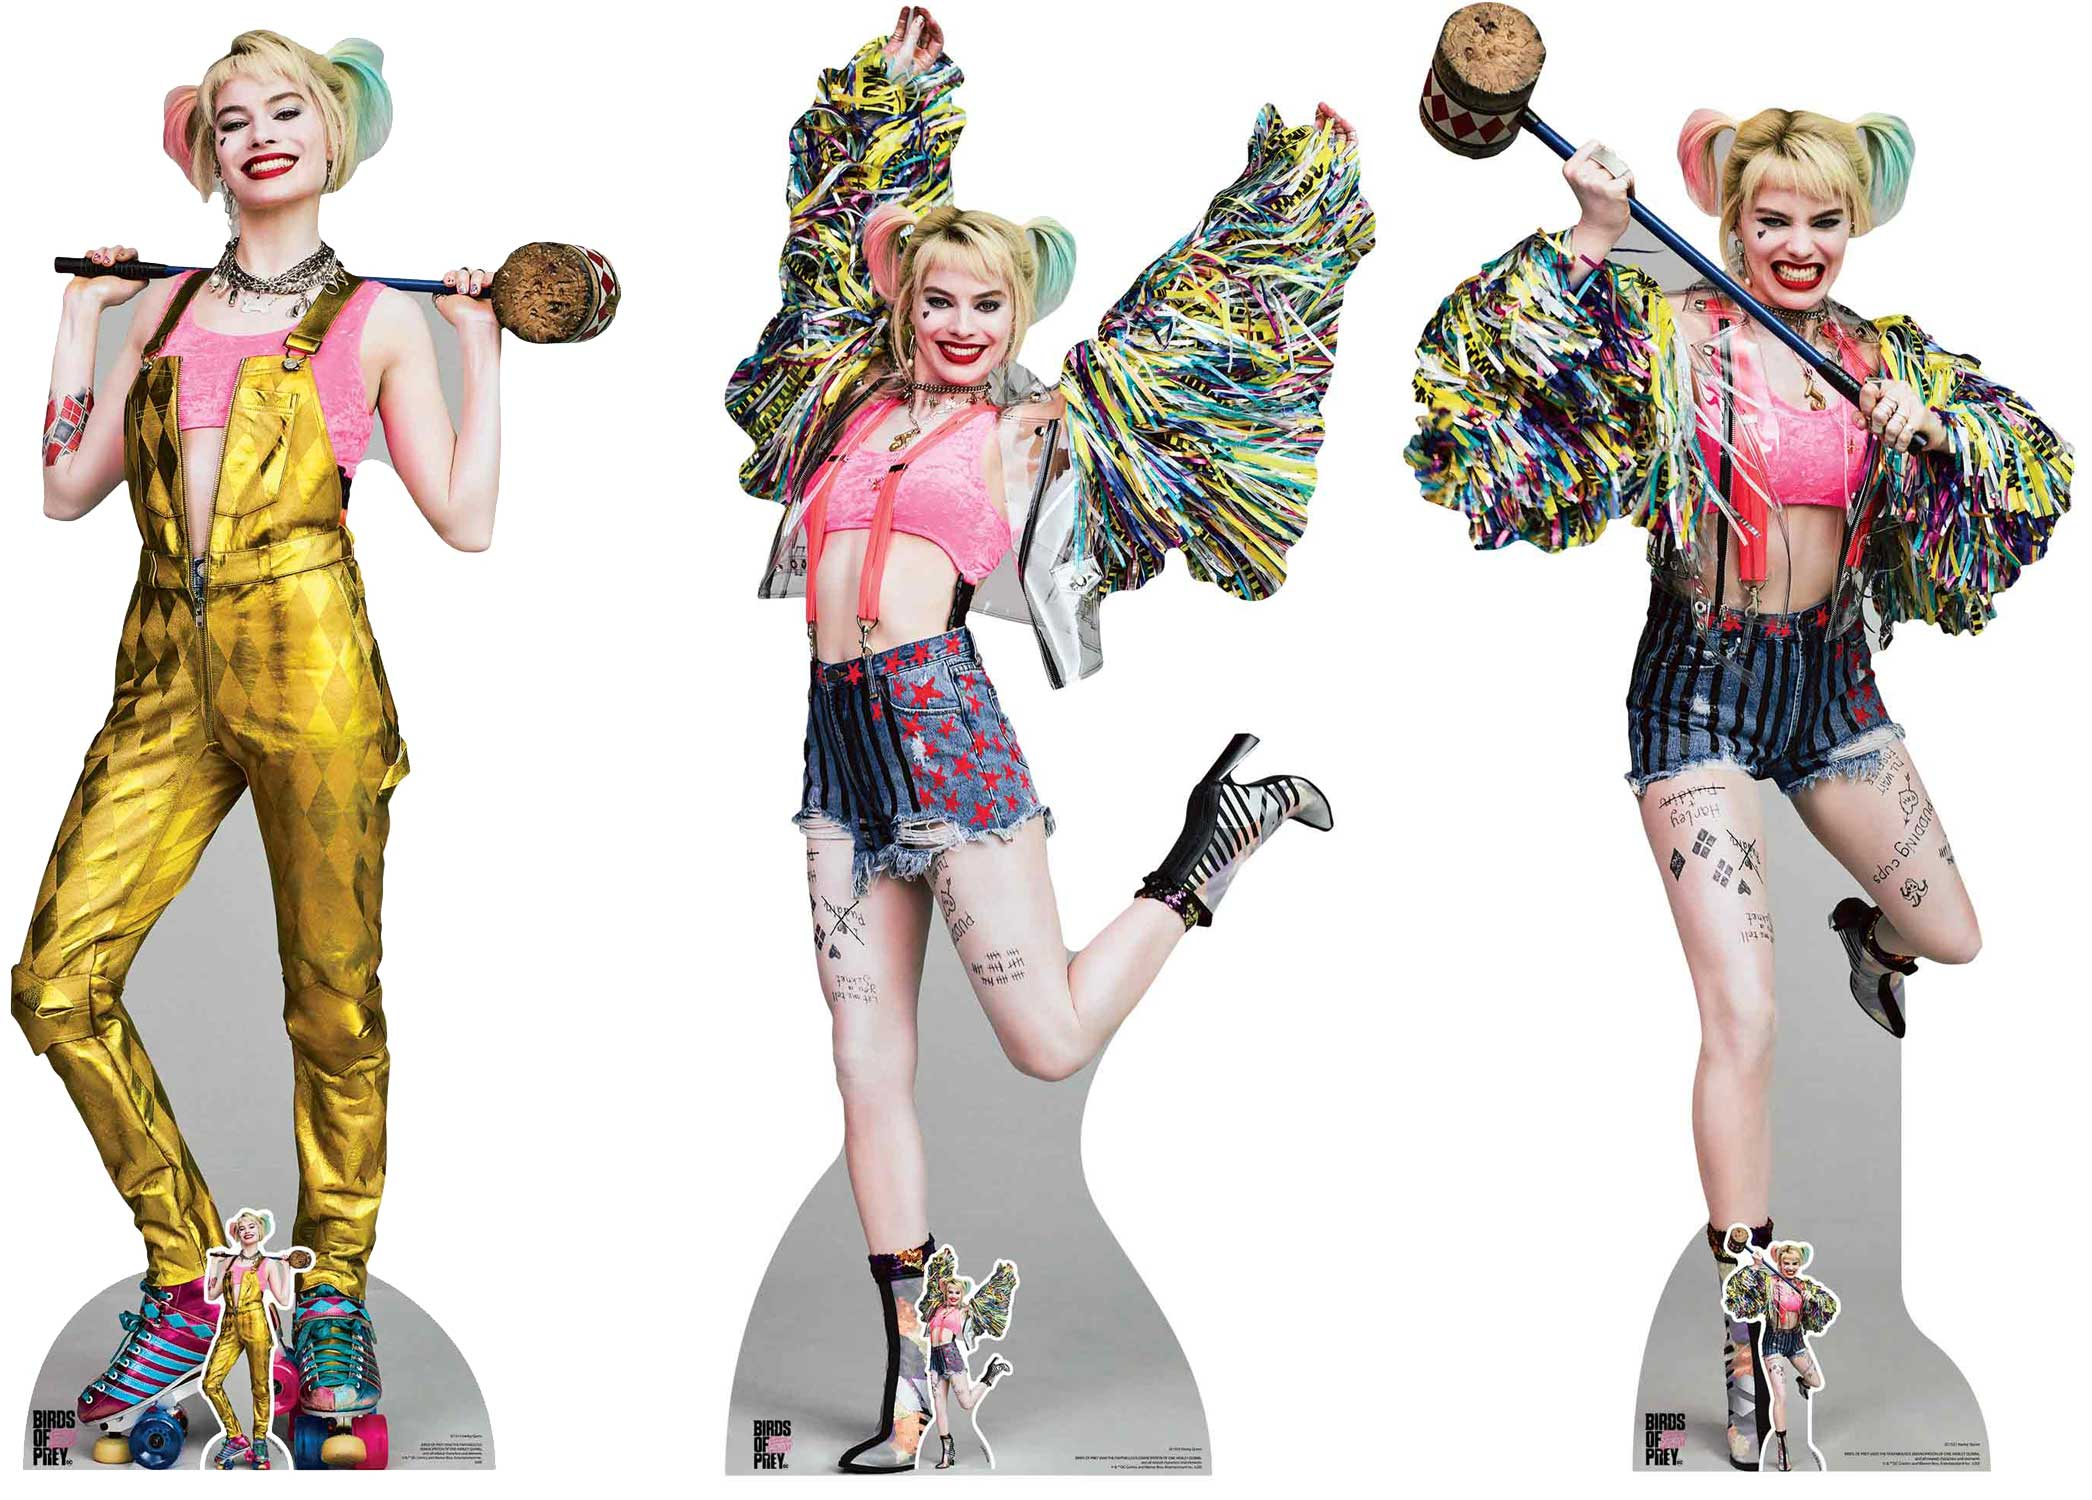 Harley Quinn Margot Robbie From Birds Of Prey Official Lifesize Cardboard Cutout Collection Set Of 3